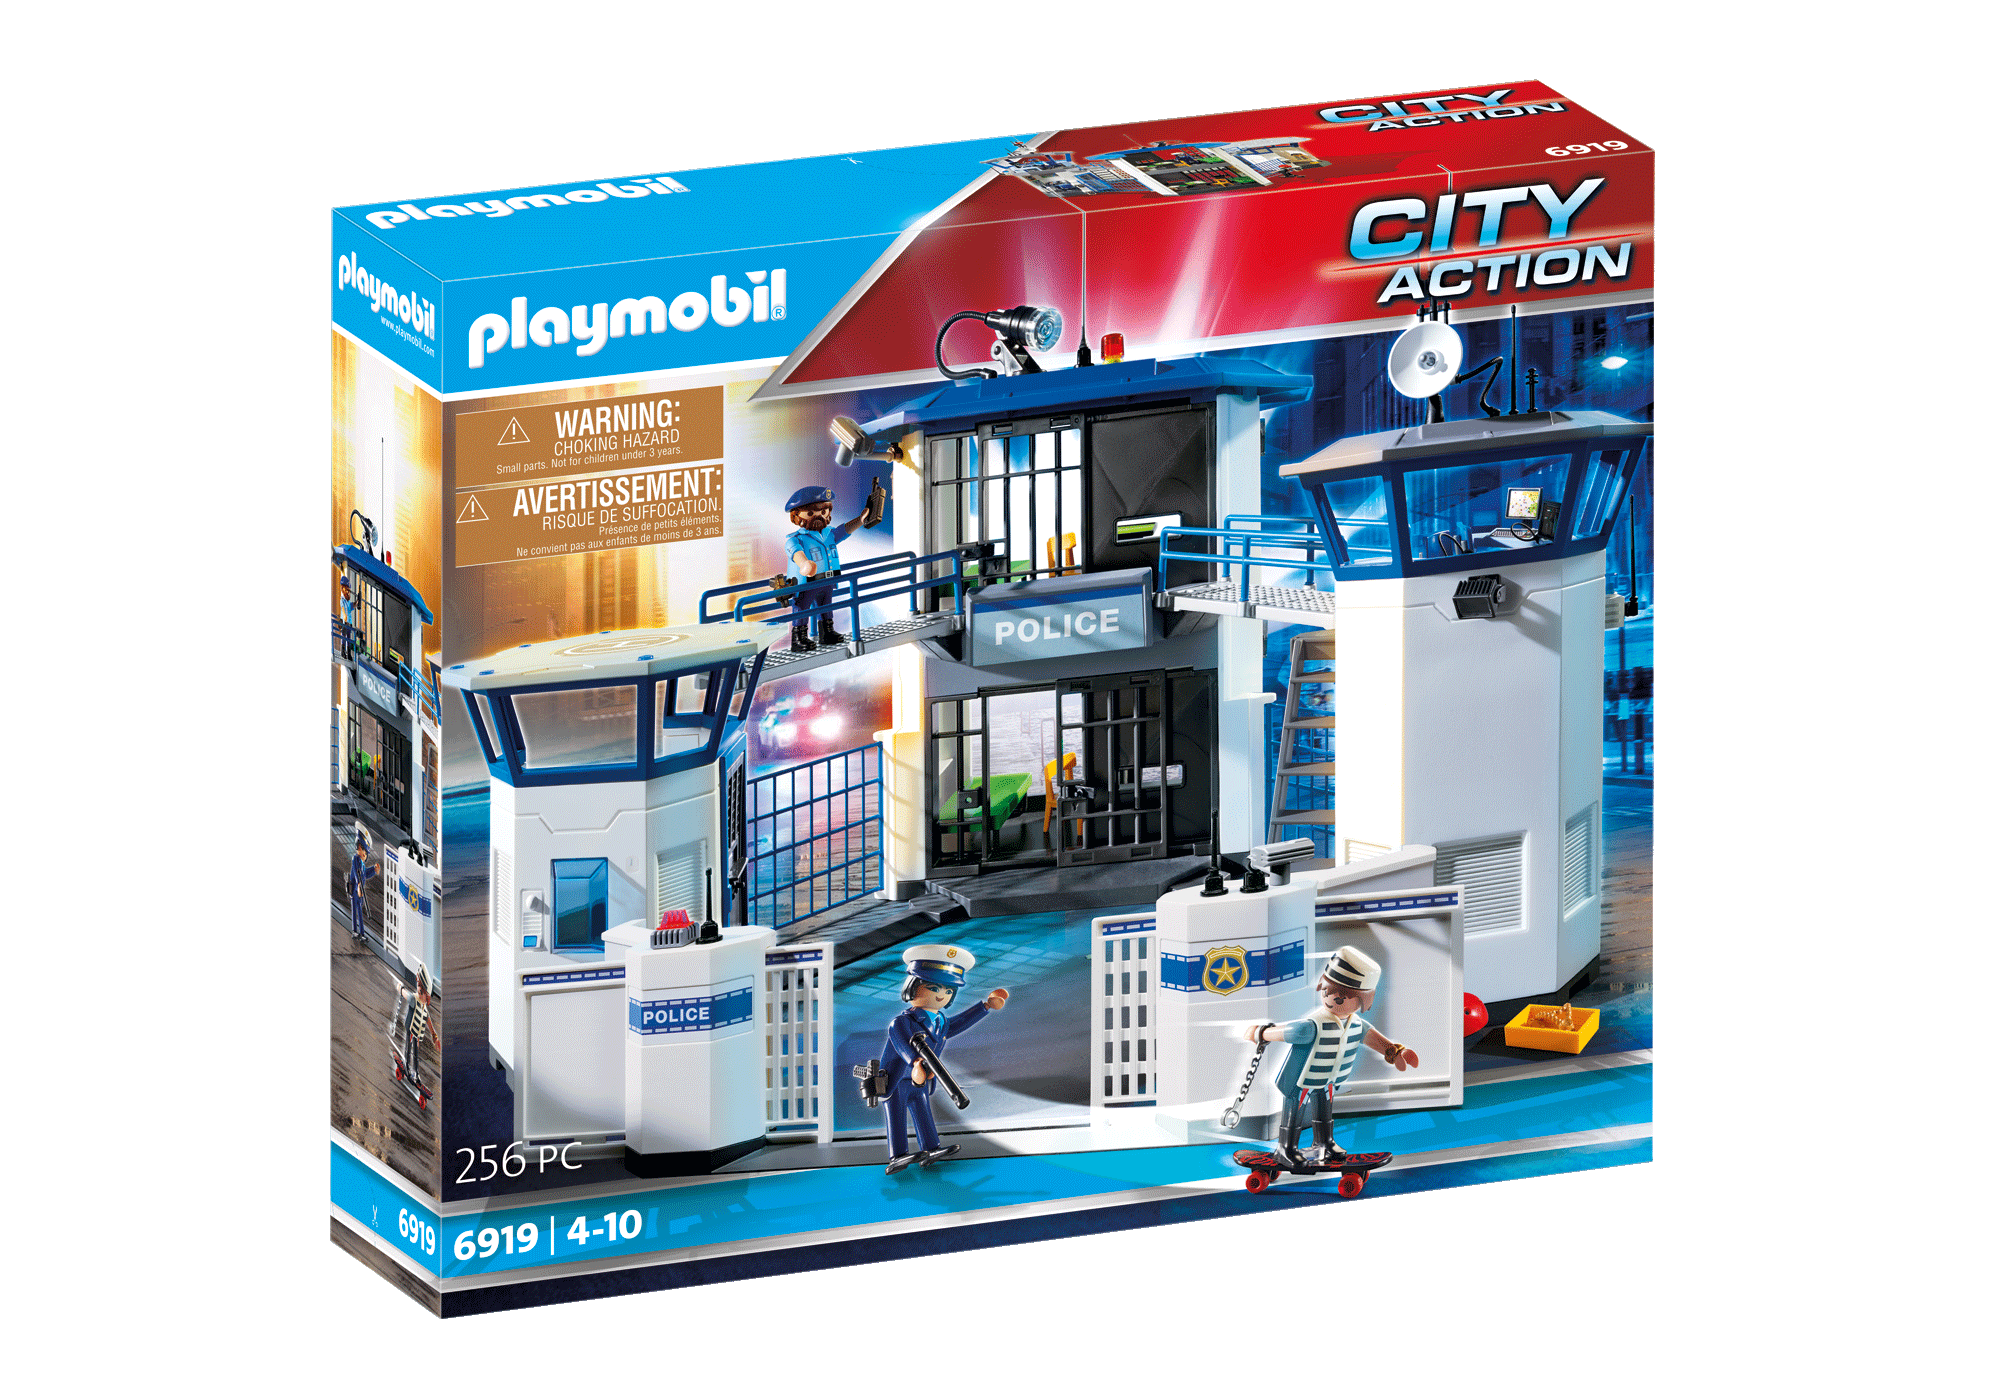 http://media.playmobil.com/i/playmobil/6919_product_box_front/Polishuvudkontor med fängelse